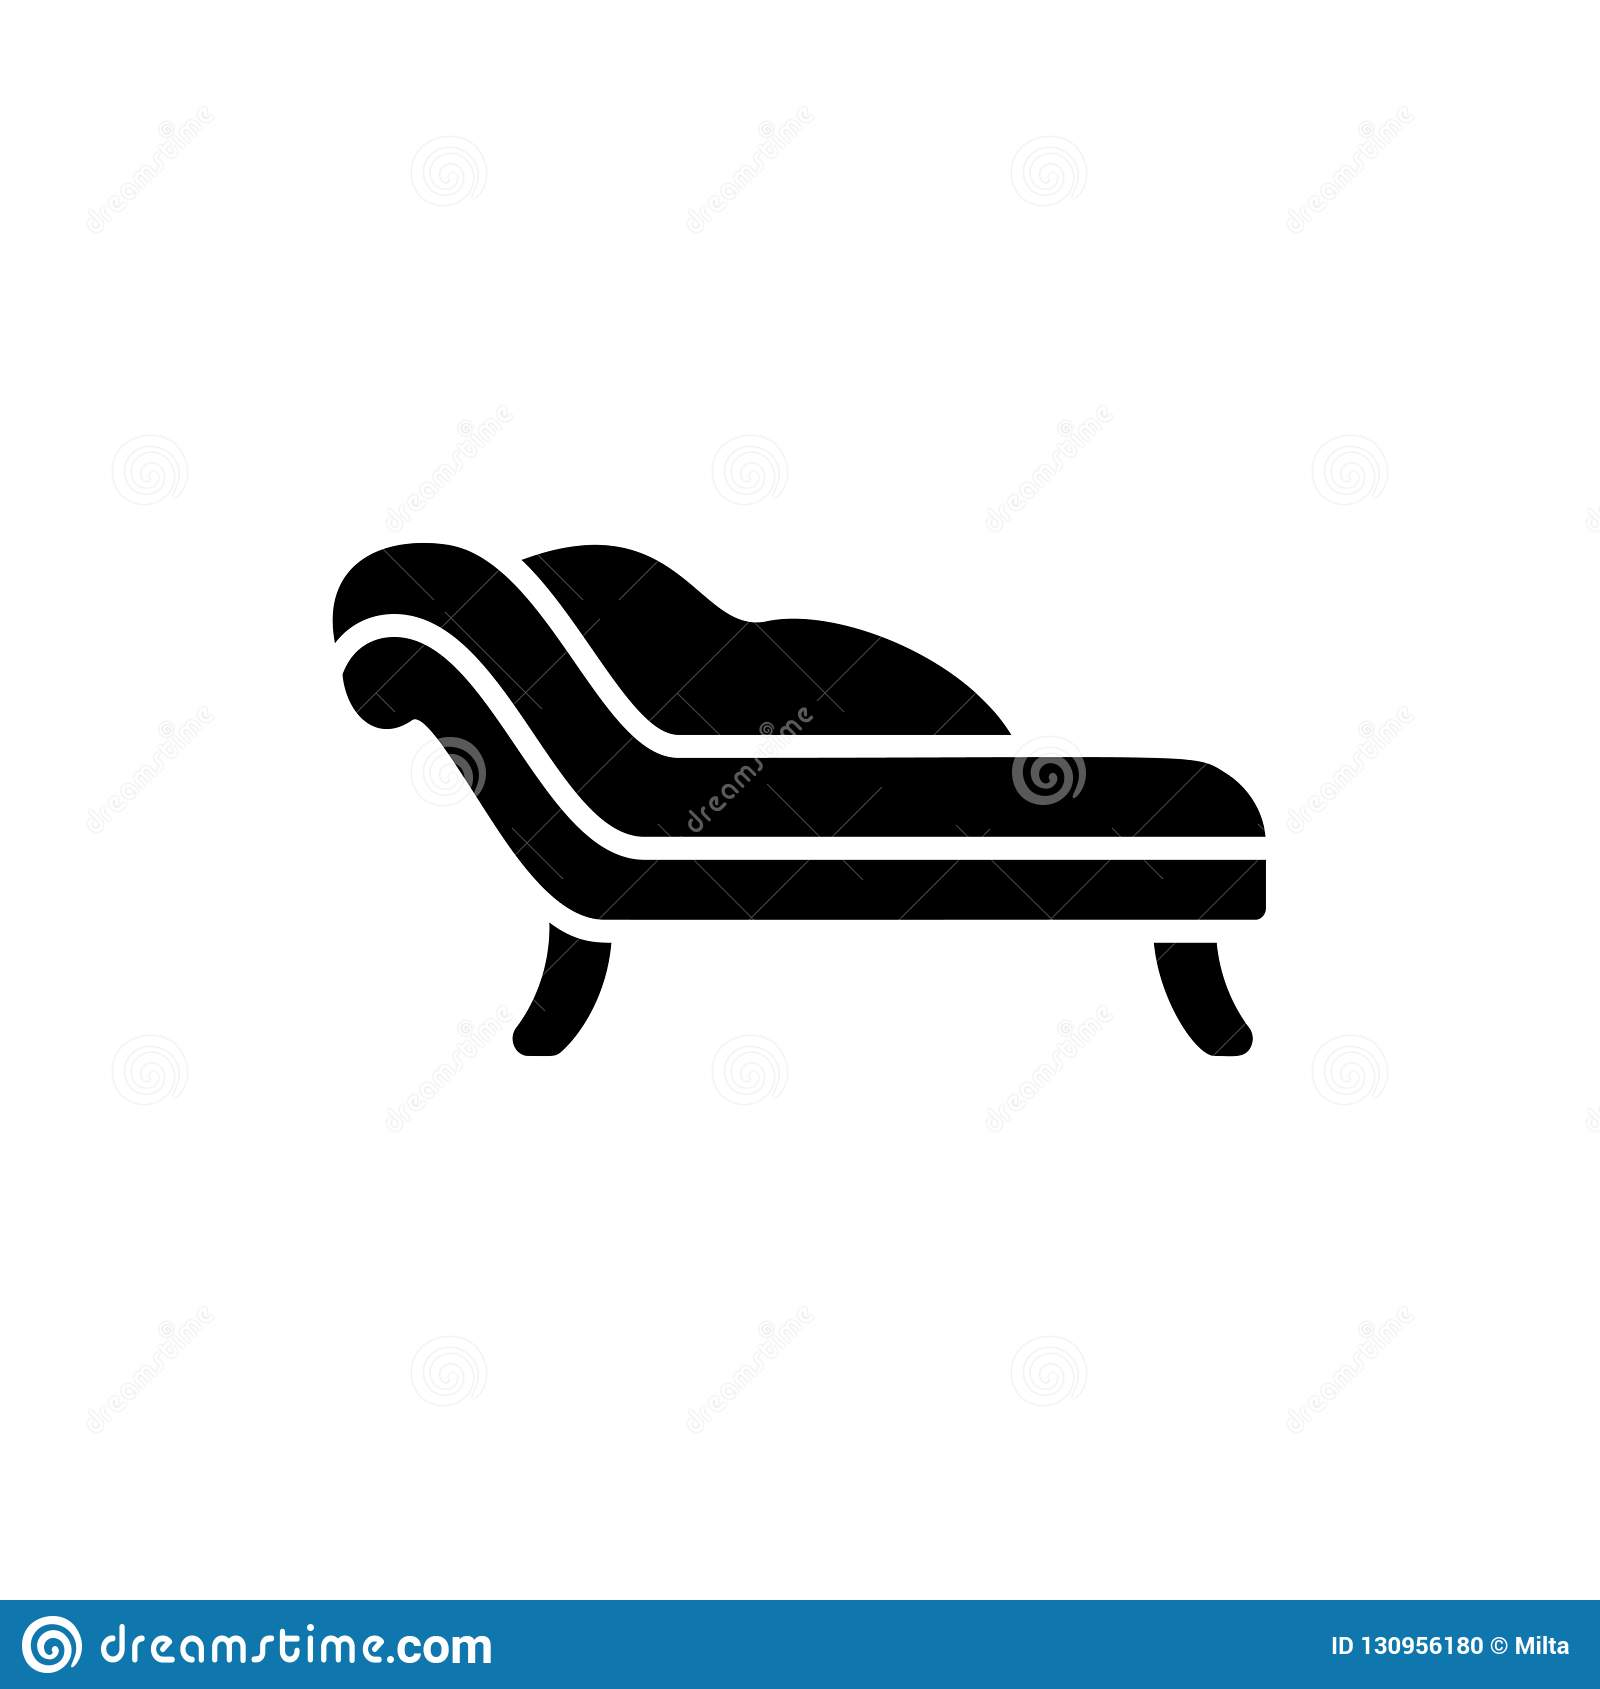 Black White Vector Illustration Of Chaise Lounge Sofa Flat Icon Of Settee Modern Home Office Furniture Isolated Object Stock Vector Illustration Of Small Classic 130956180